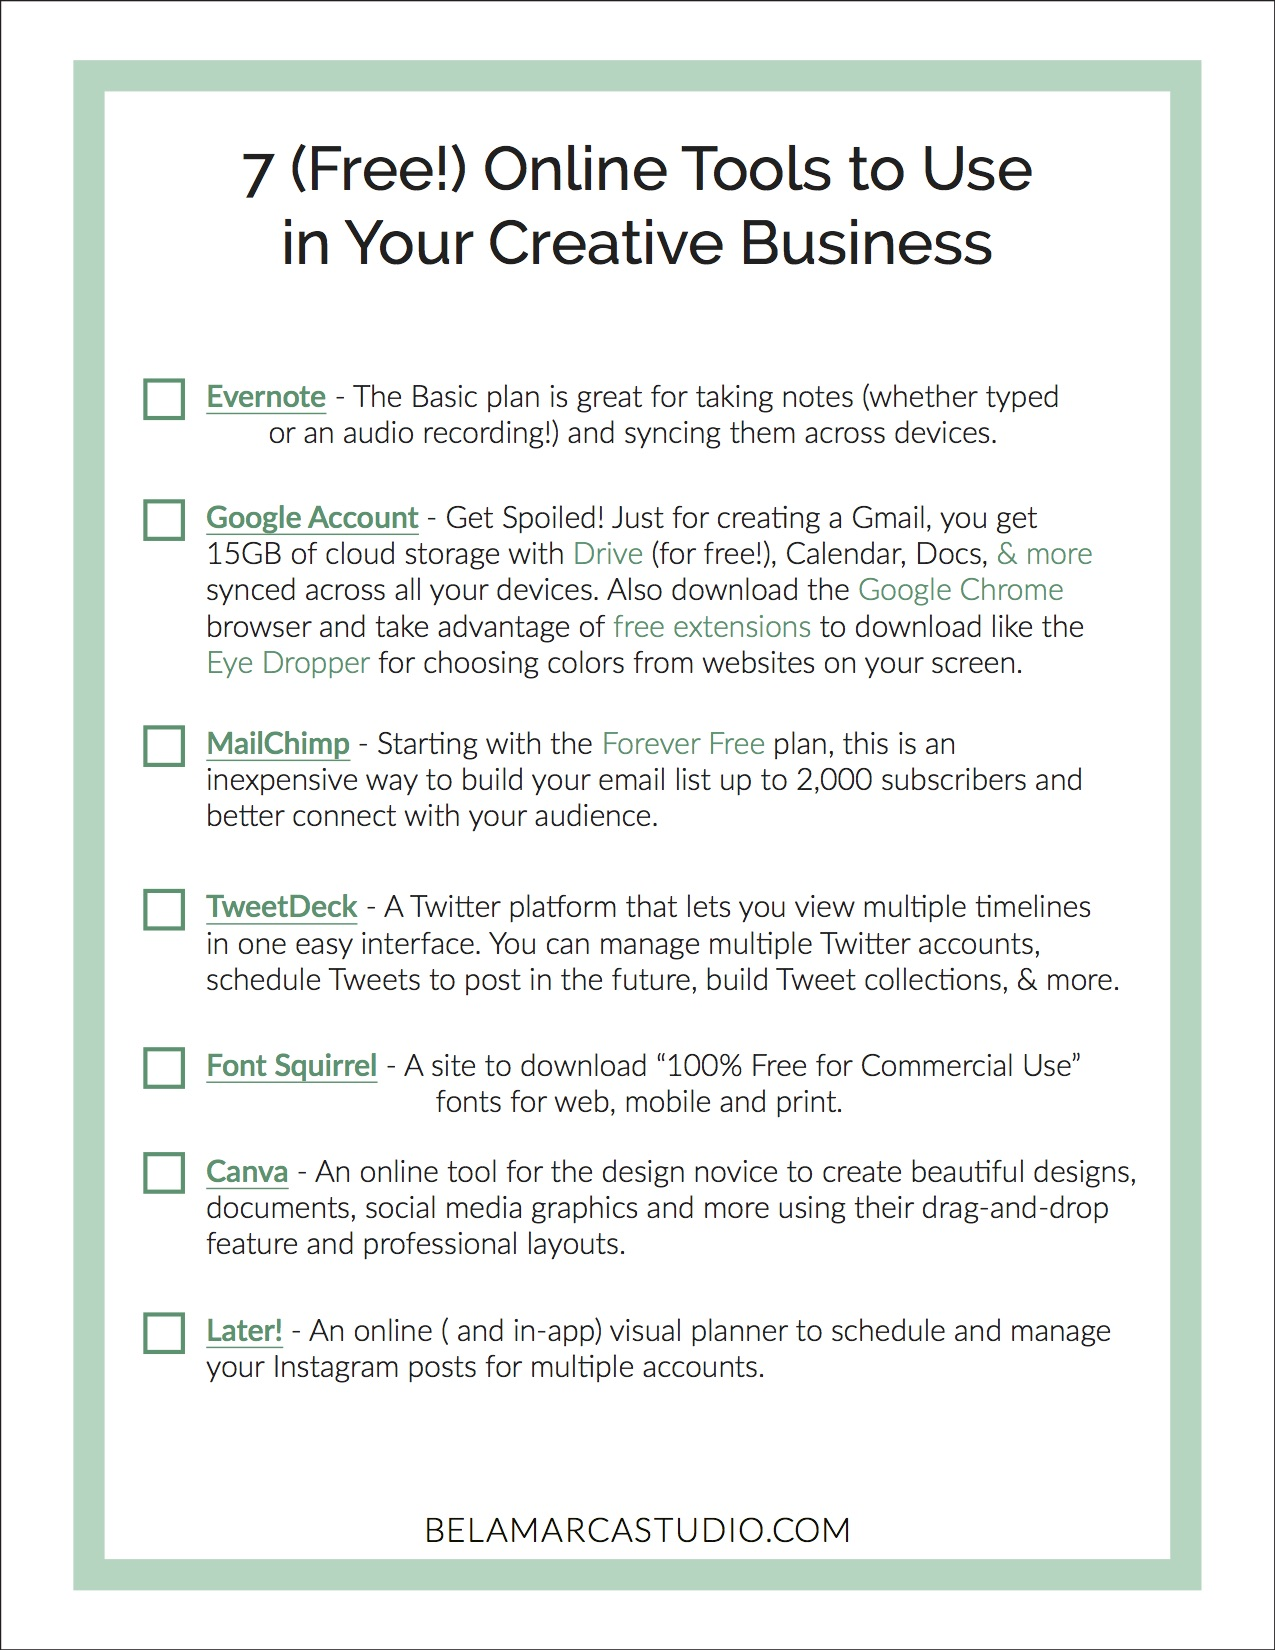 free-online-tools-for-creative-business.jpg